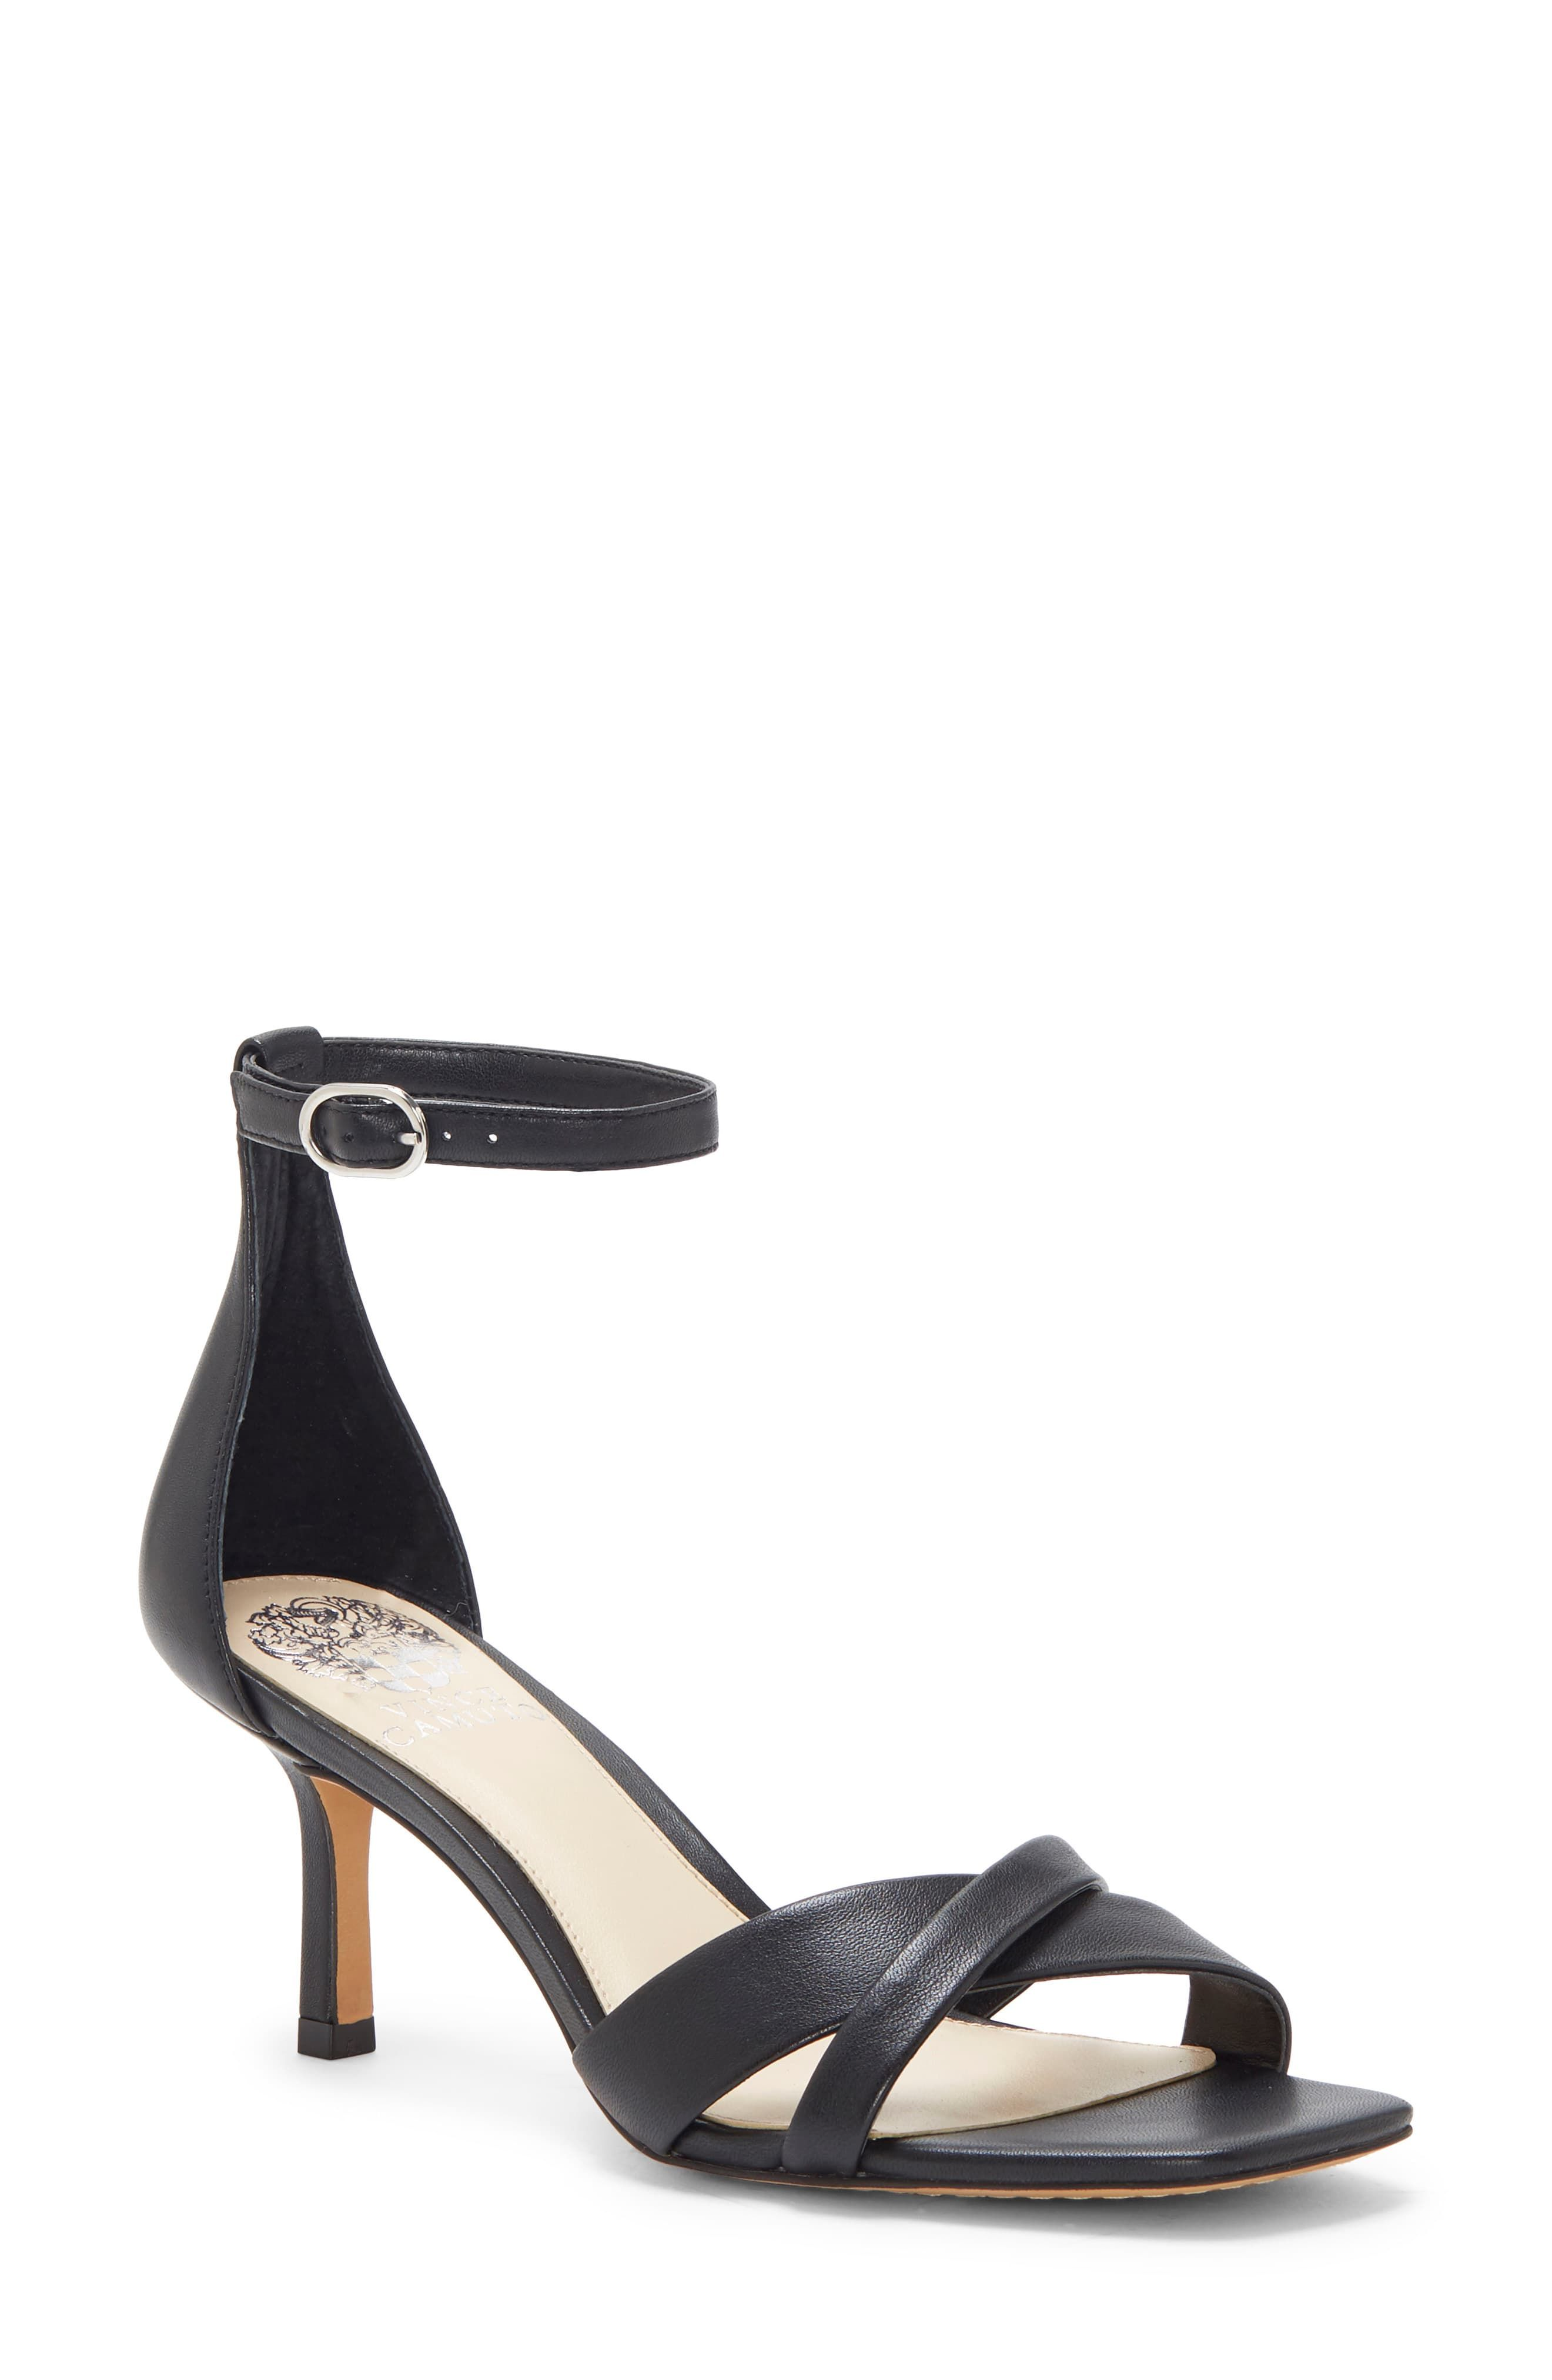 Women S Vince Camuto Sarriss Ankle Strap Sandal Size 6 M Black Ankle Strap Sandals Strap Sandals Ankle Strap